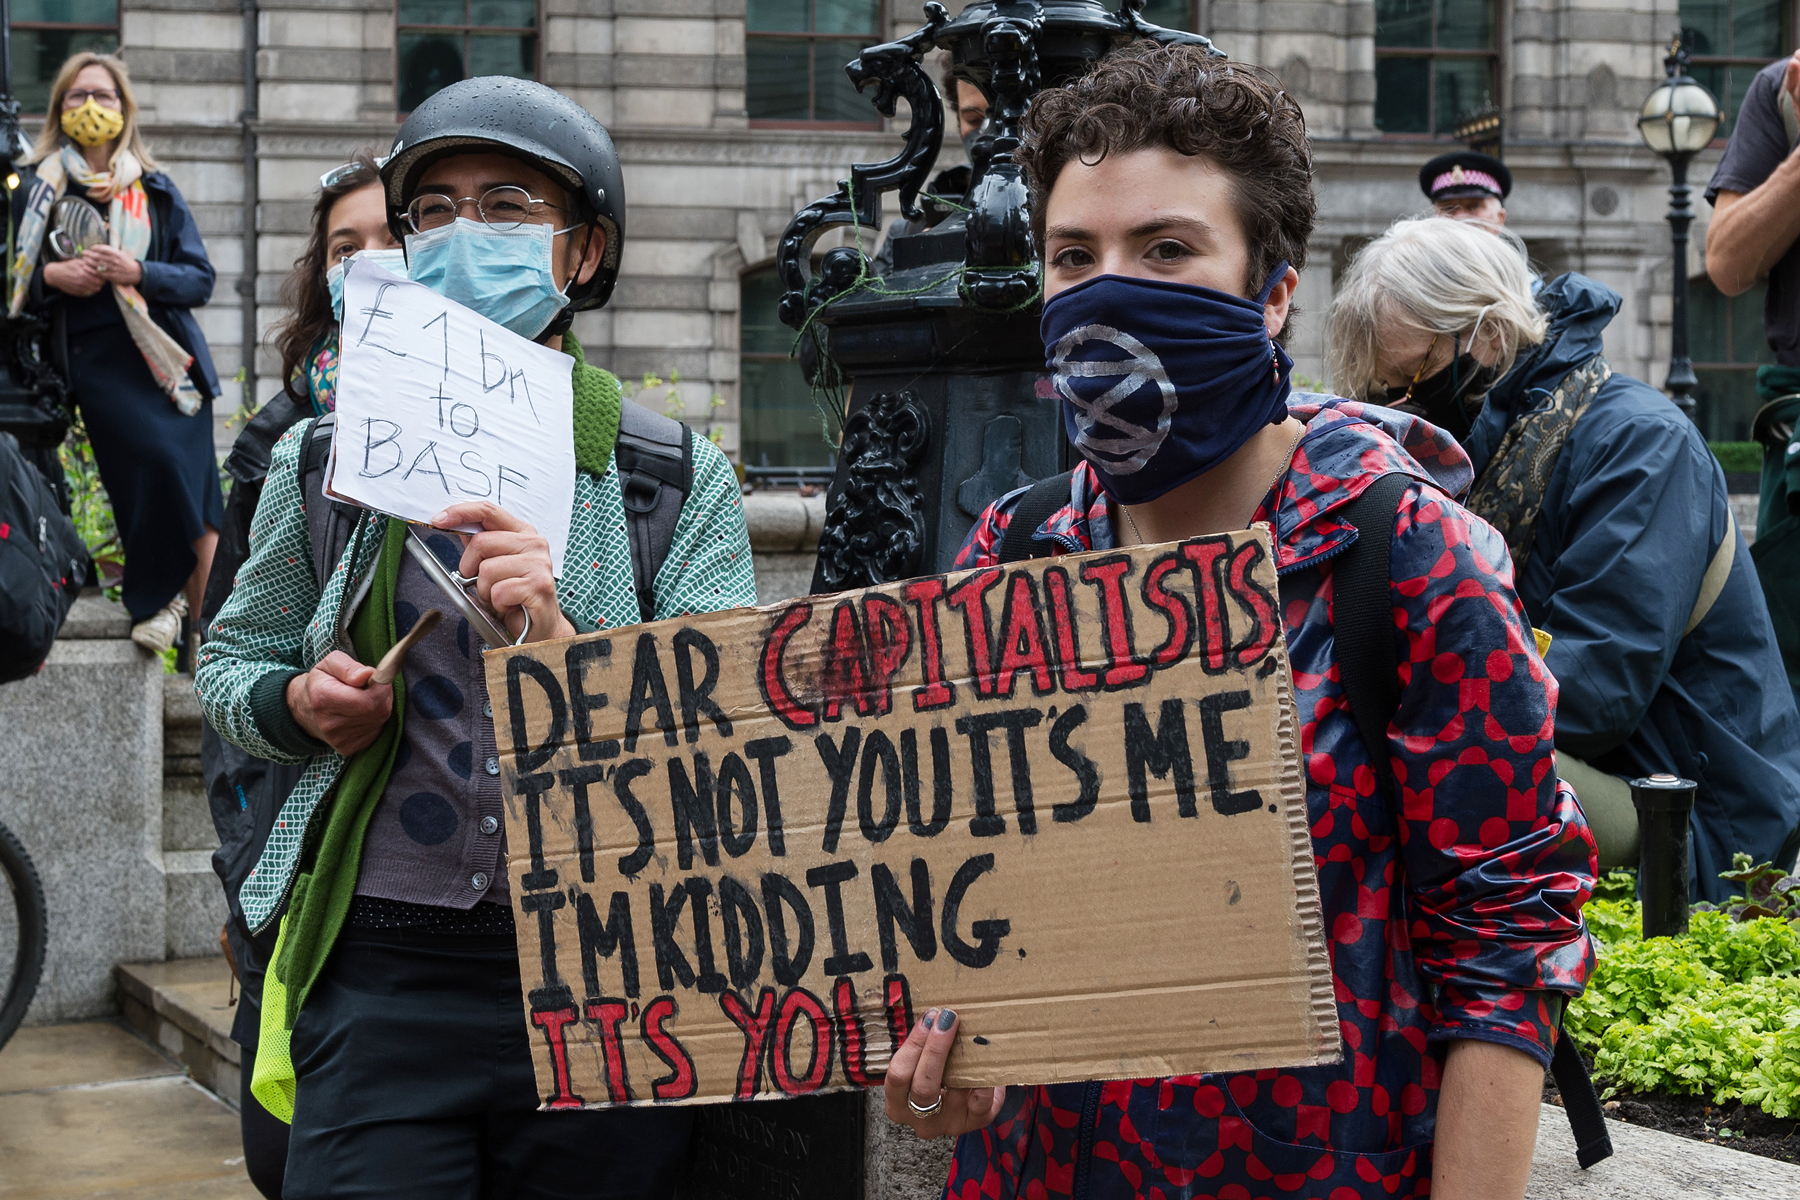 Extinction Rebellion environmental activists stage a loud demonstration outside the Bank of England to protest against the distribution of funds through the Covid Corporate Financing Facility to carbon intensive industries on July 2nd, 2020 in London, England.